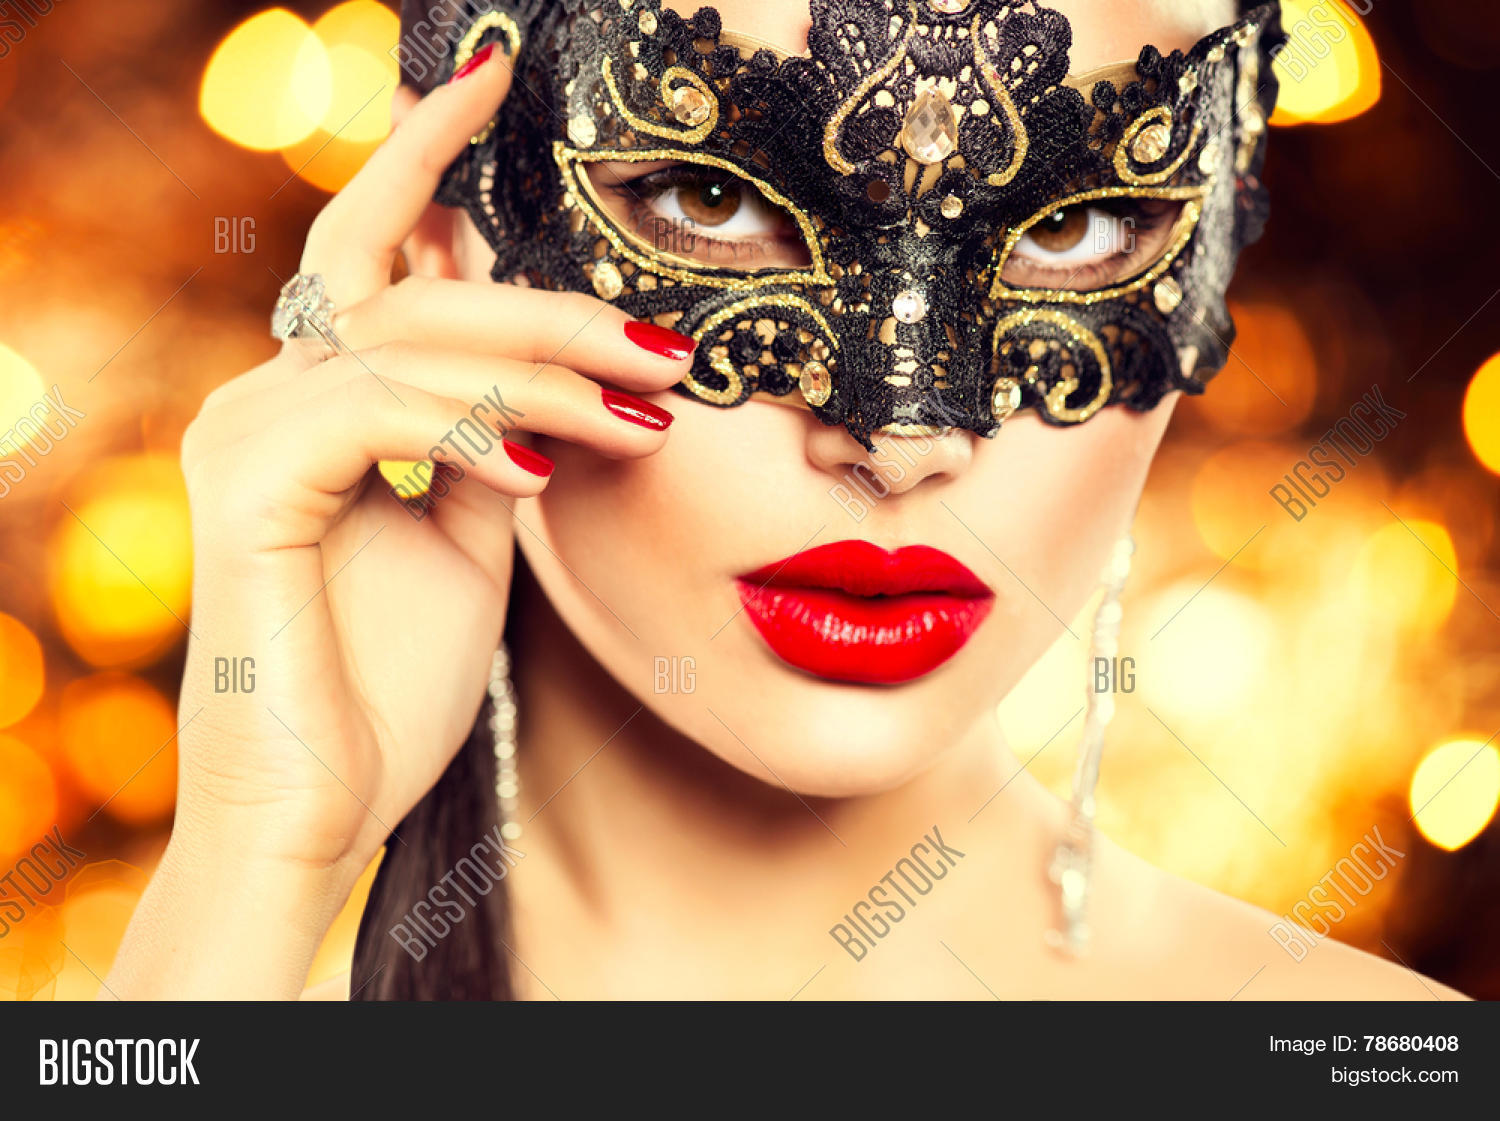 54cc84f3f449 Beauty model woman wearing venetian masquerade carnival mask at party, over  holiday dark background.